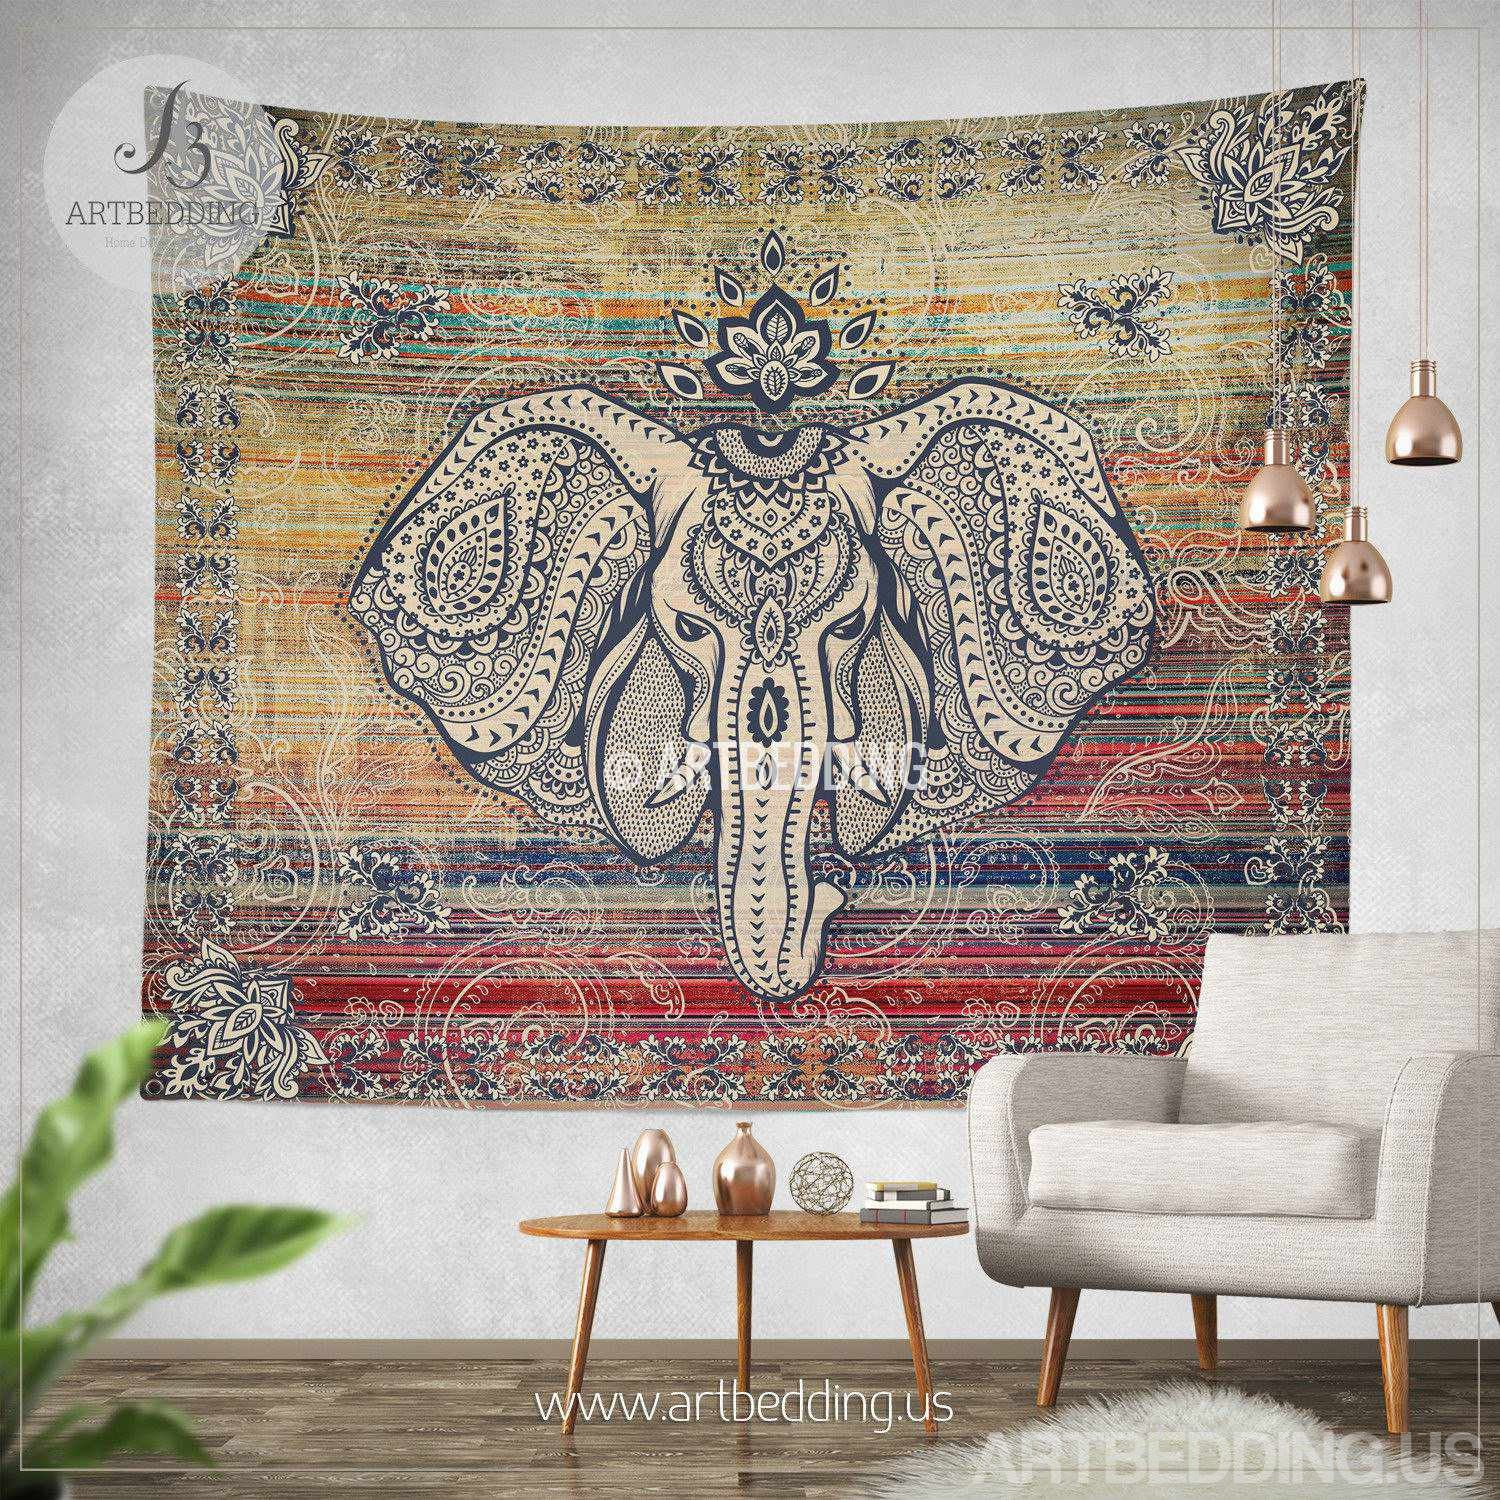 Tapestry Wall Hanging ethno ganesh wall tapestry, elephant head wall tapestry, hippie